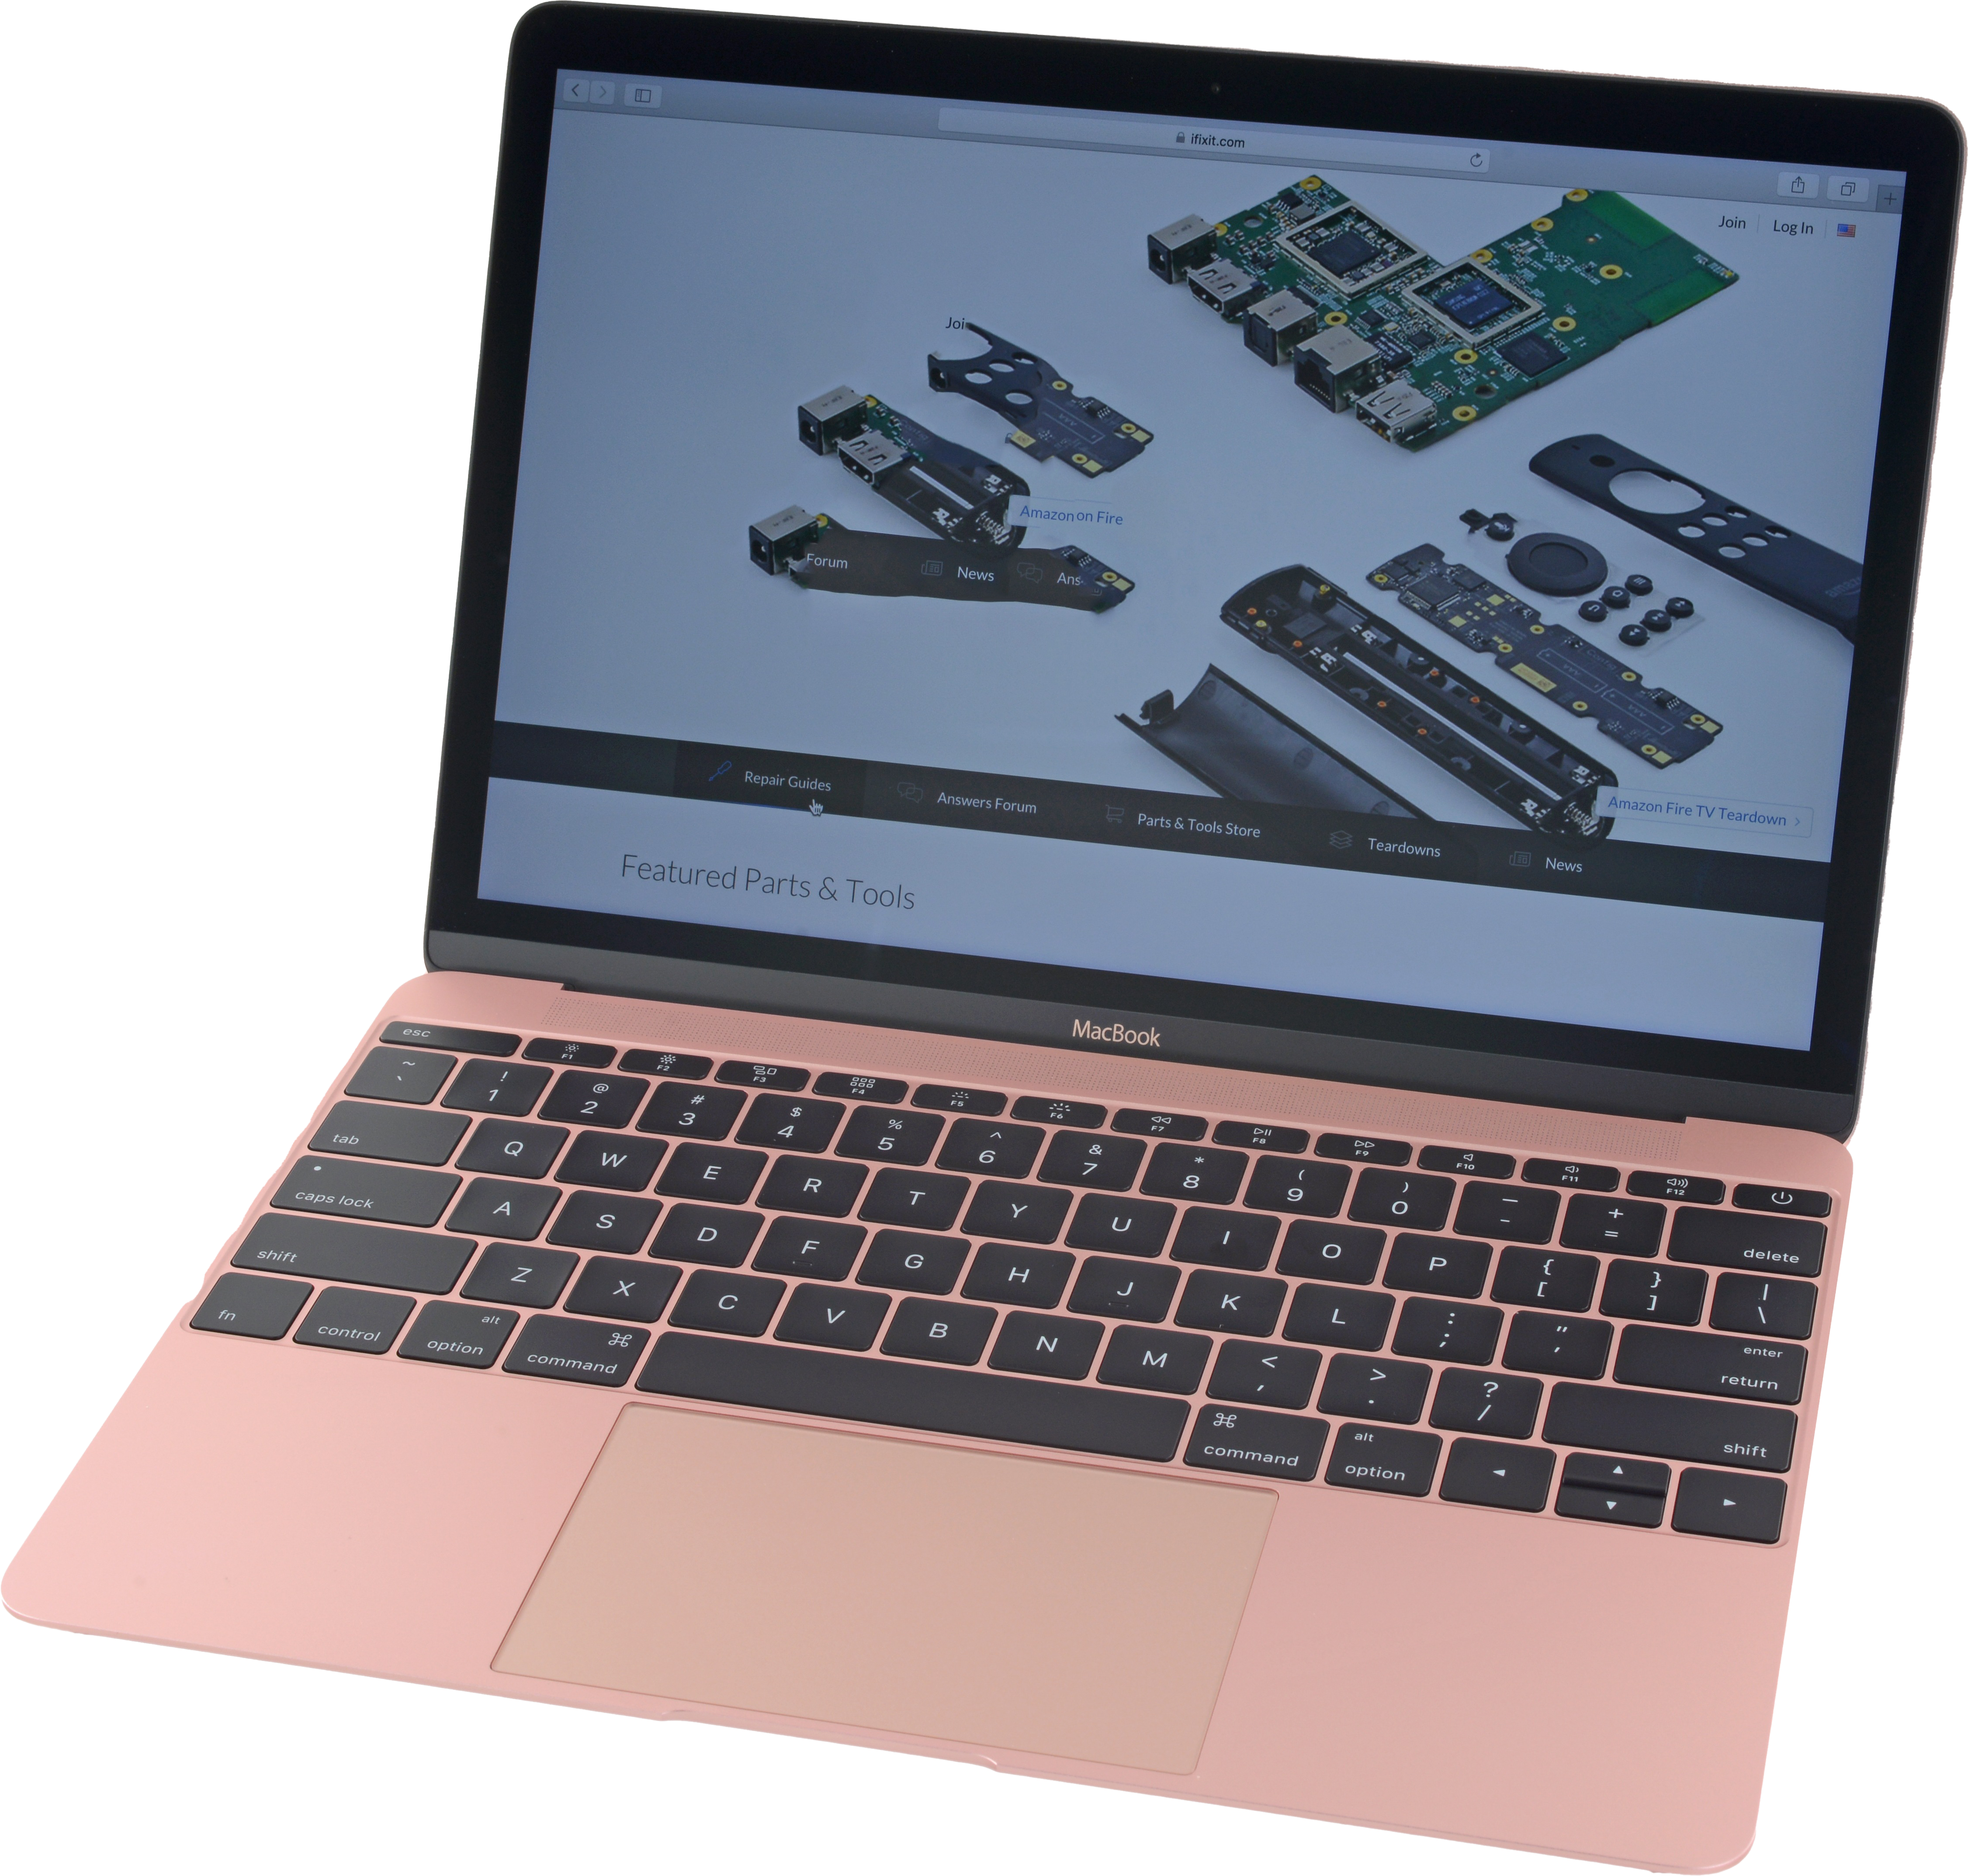 "Замена тачпада                                                                                                      MacBook 12"" фото 8"